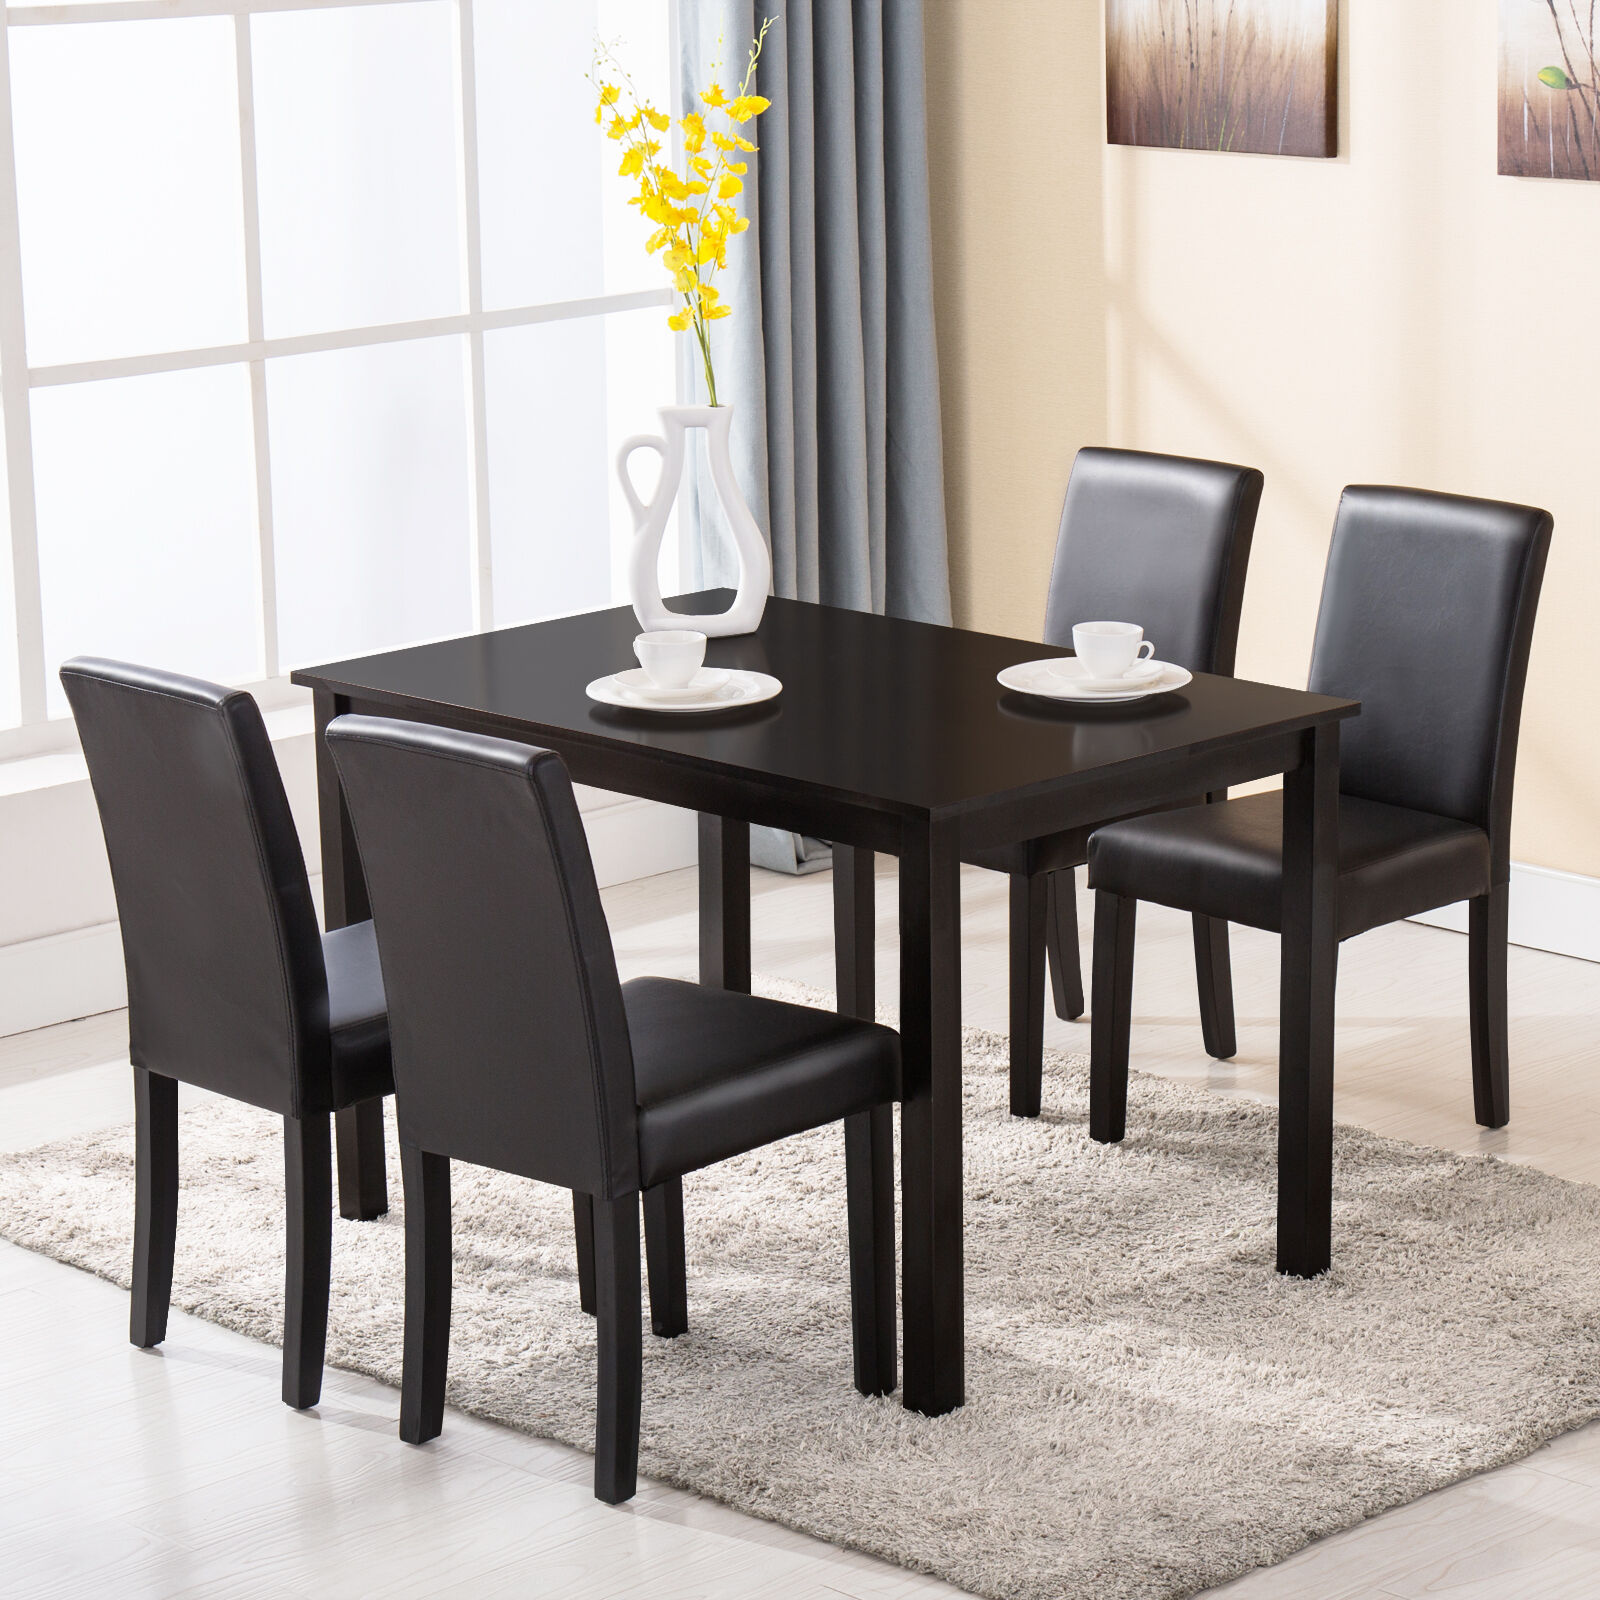 5 piece dining table set 4 chairs wood kitchen dinette for 4 chair dining table